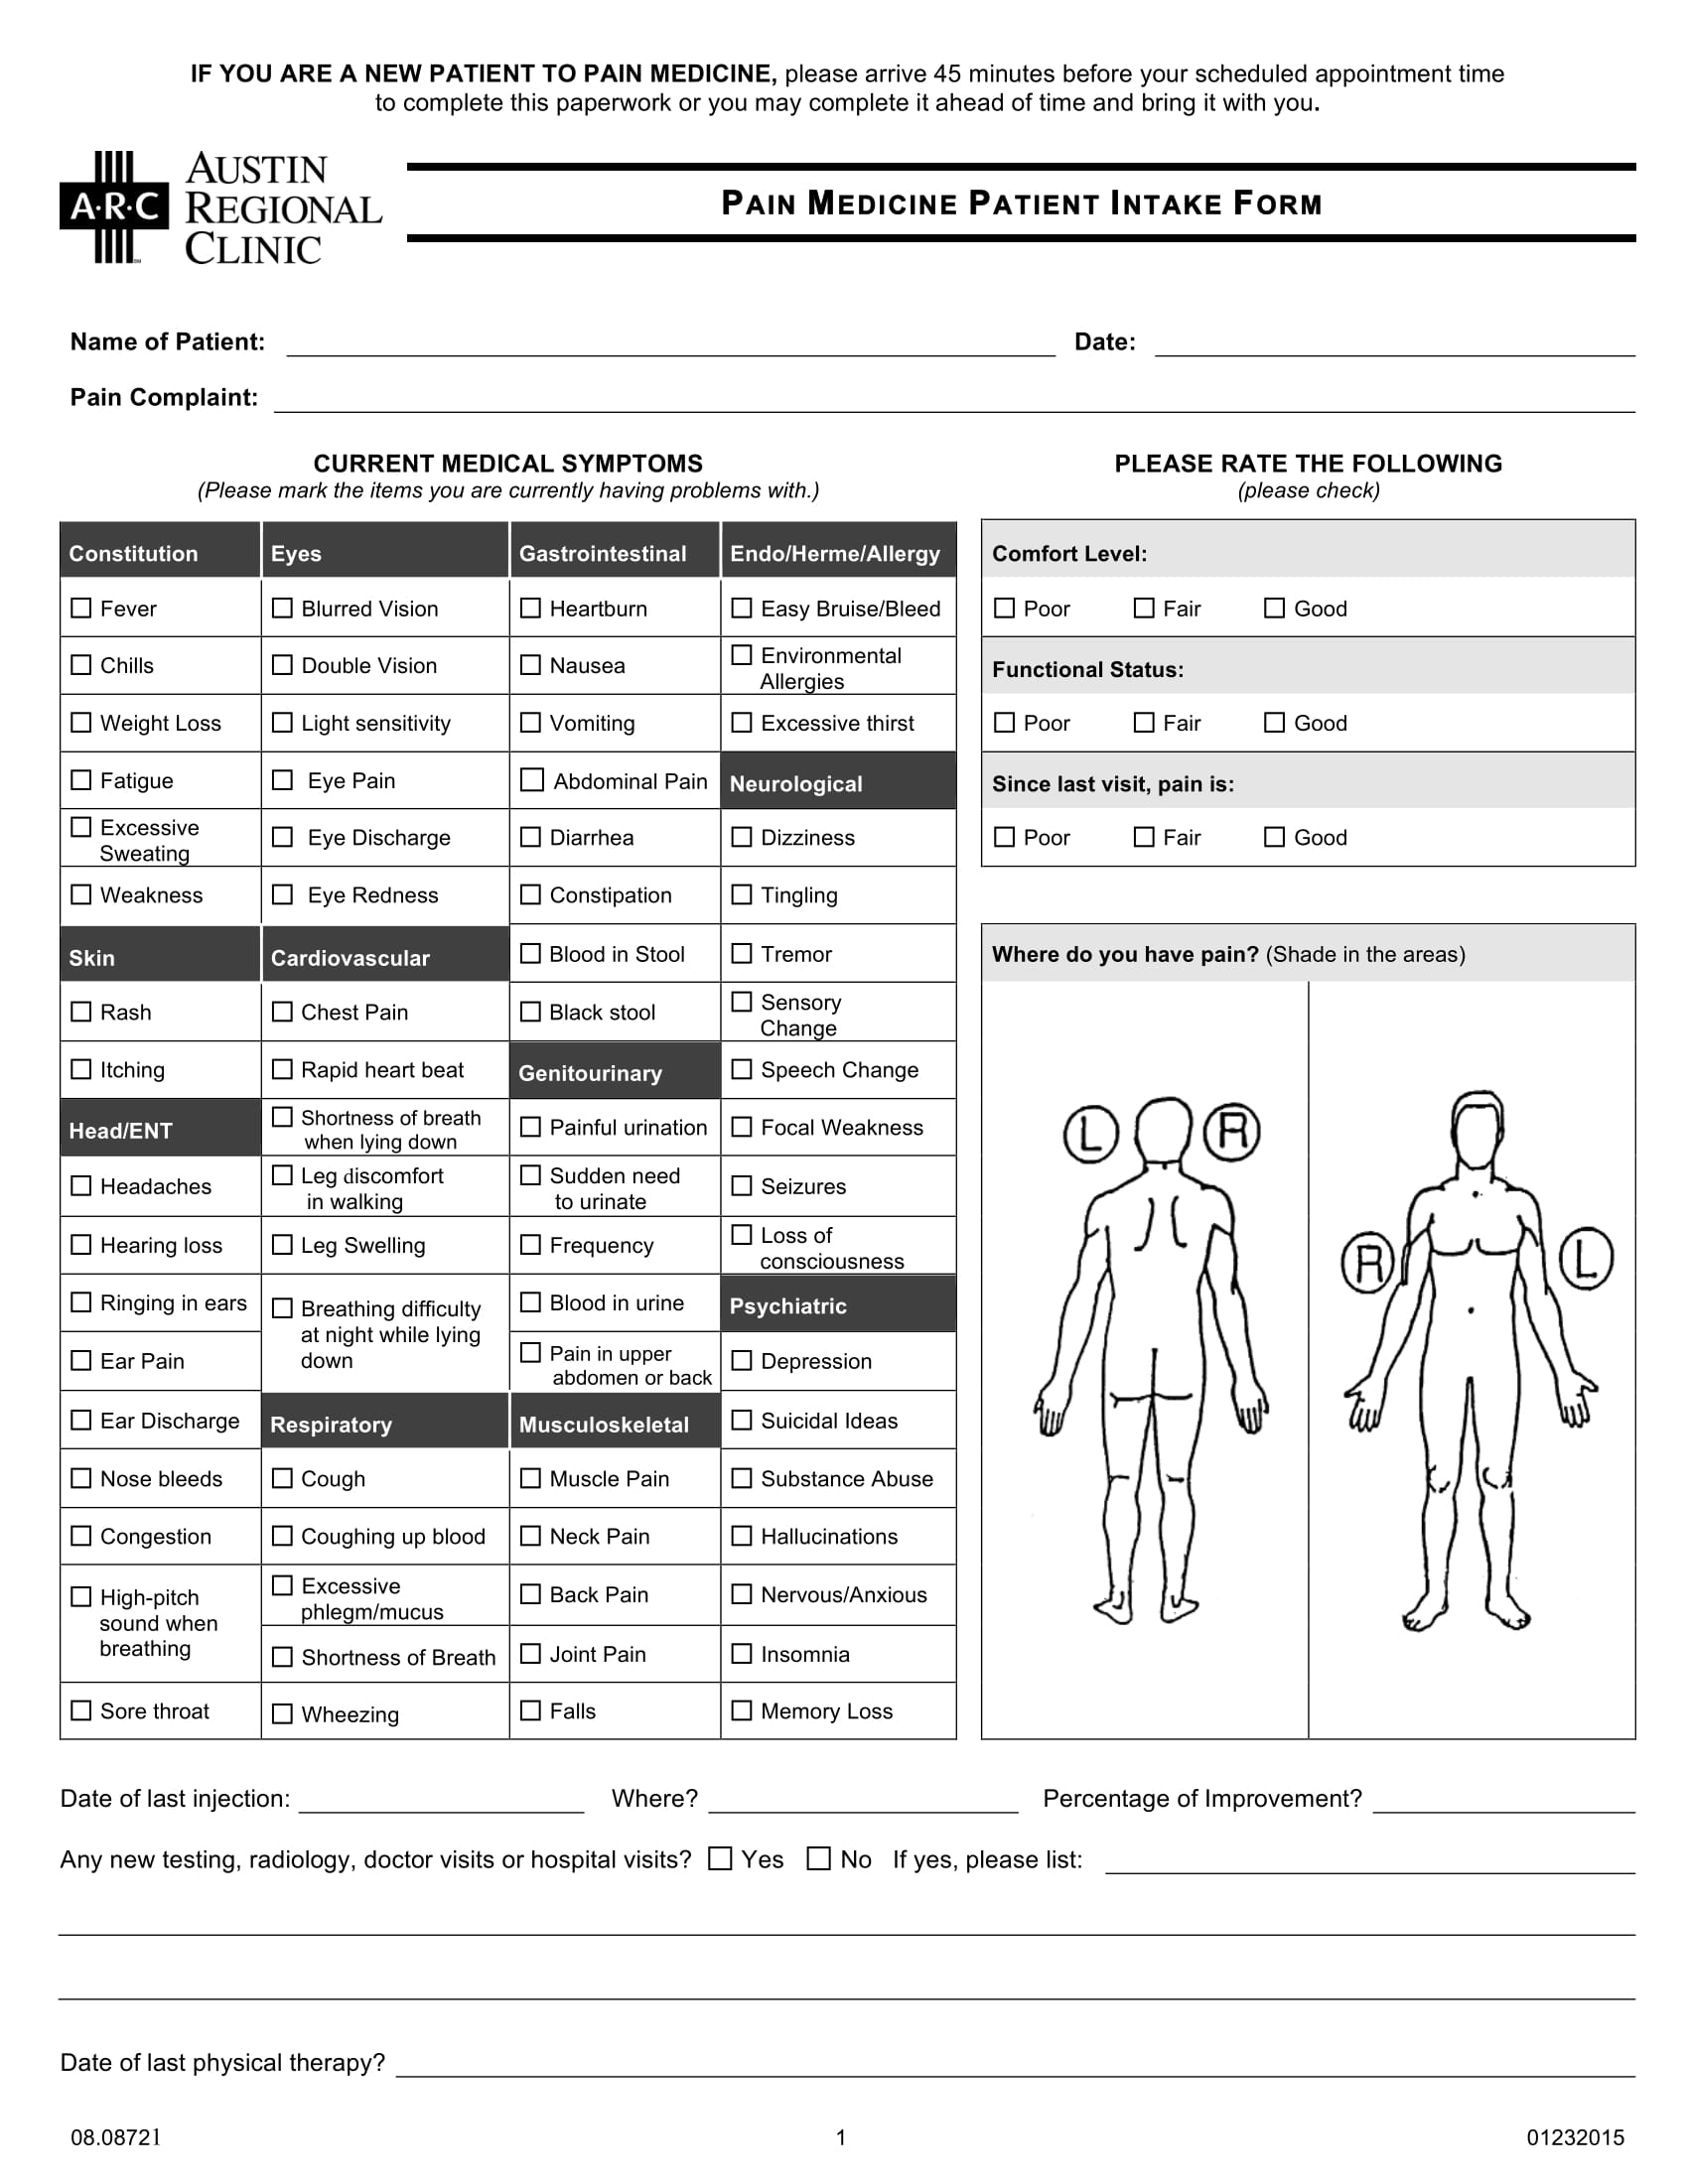 pain medicine patient intake form 1